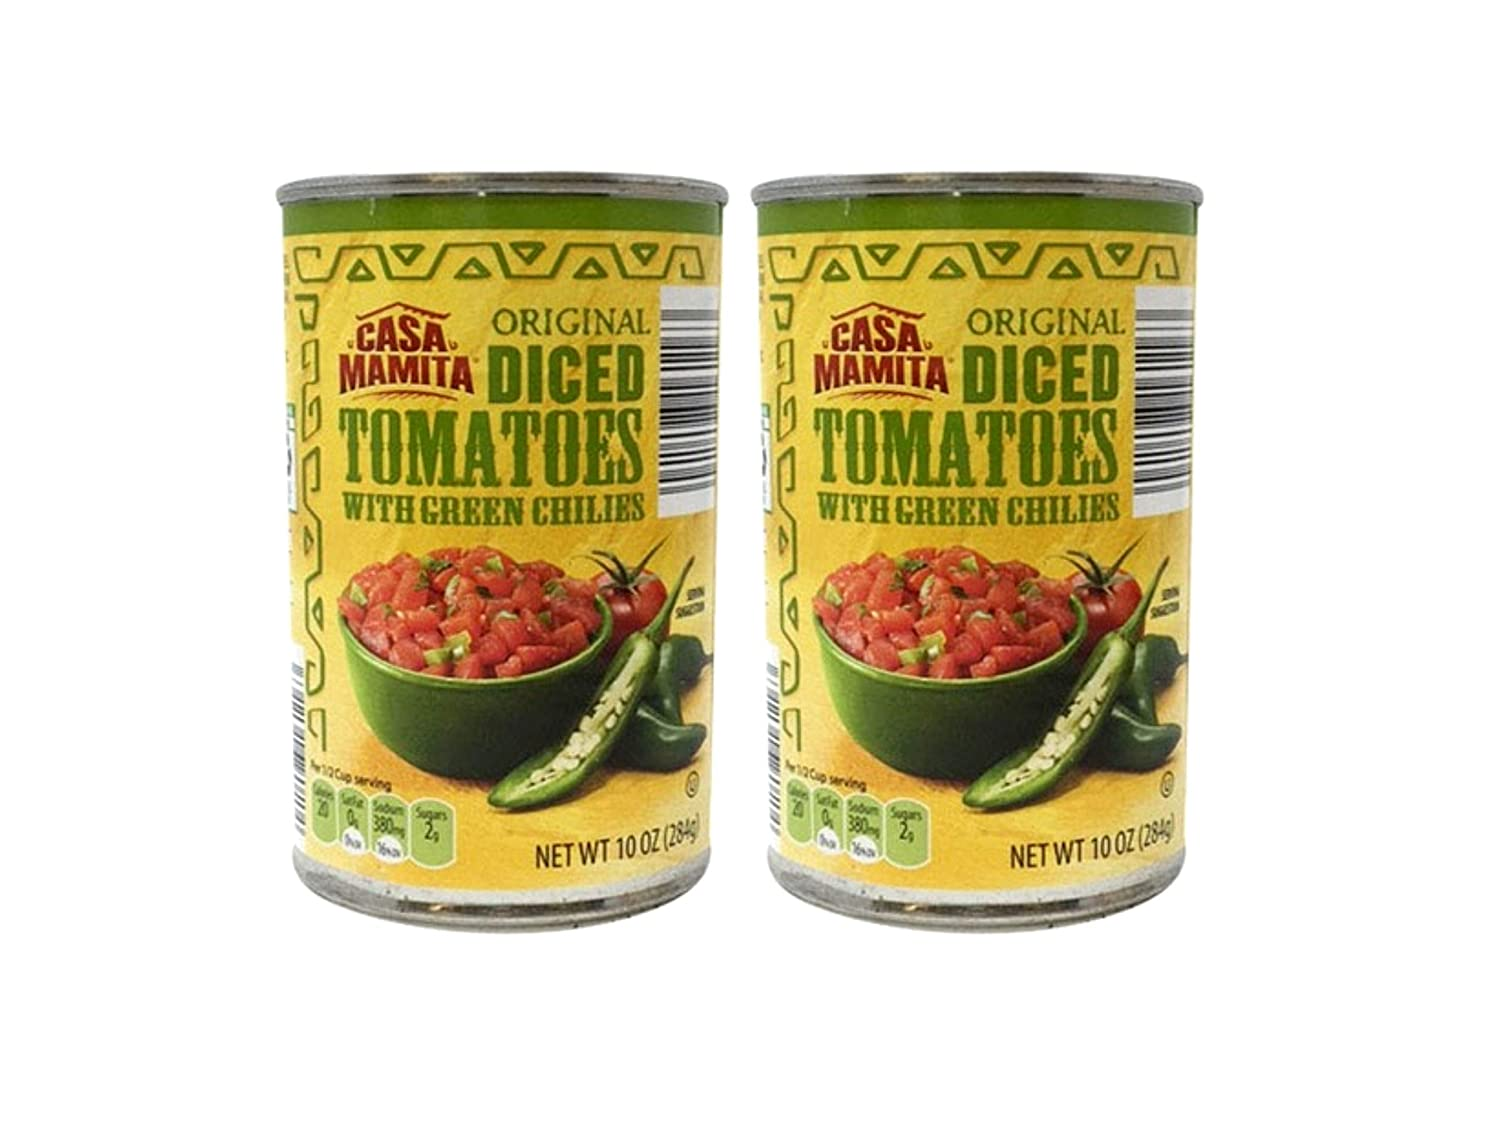 Casa Mamita Original Diced Tomatoes with Green Chilies - 2 Cans (10 oz)